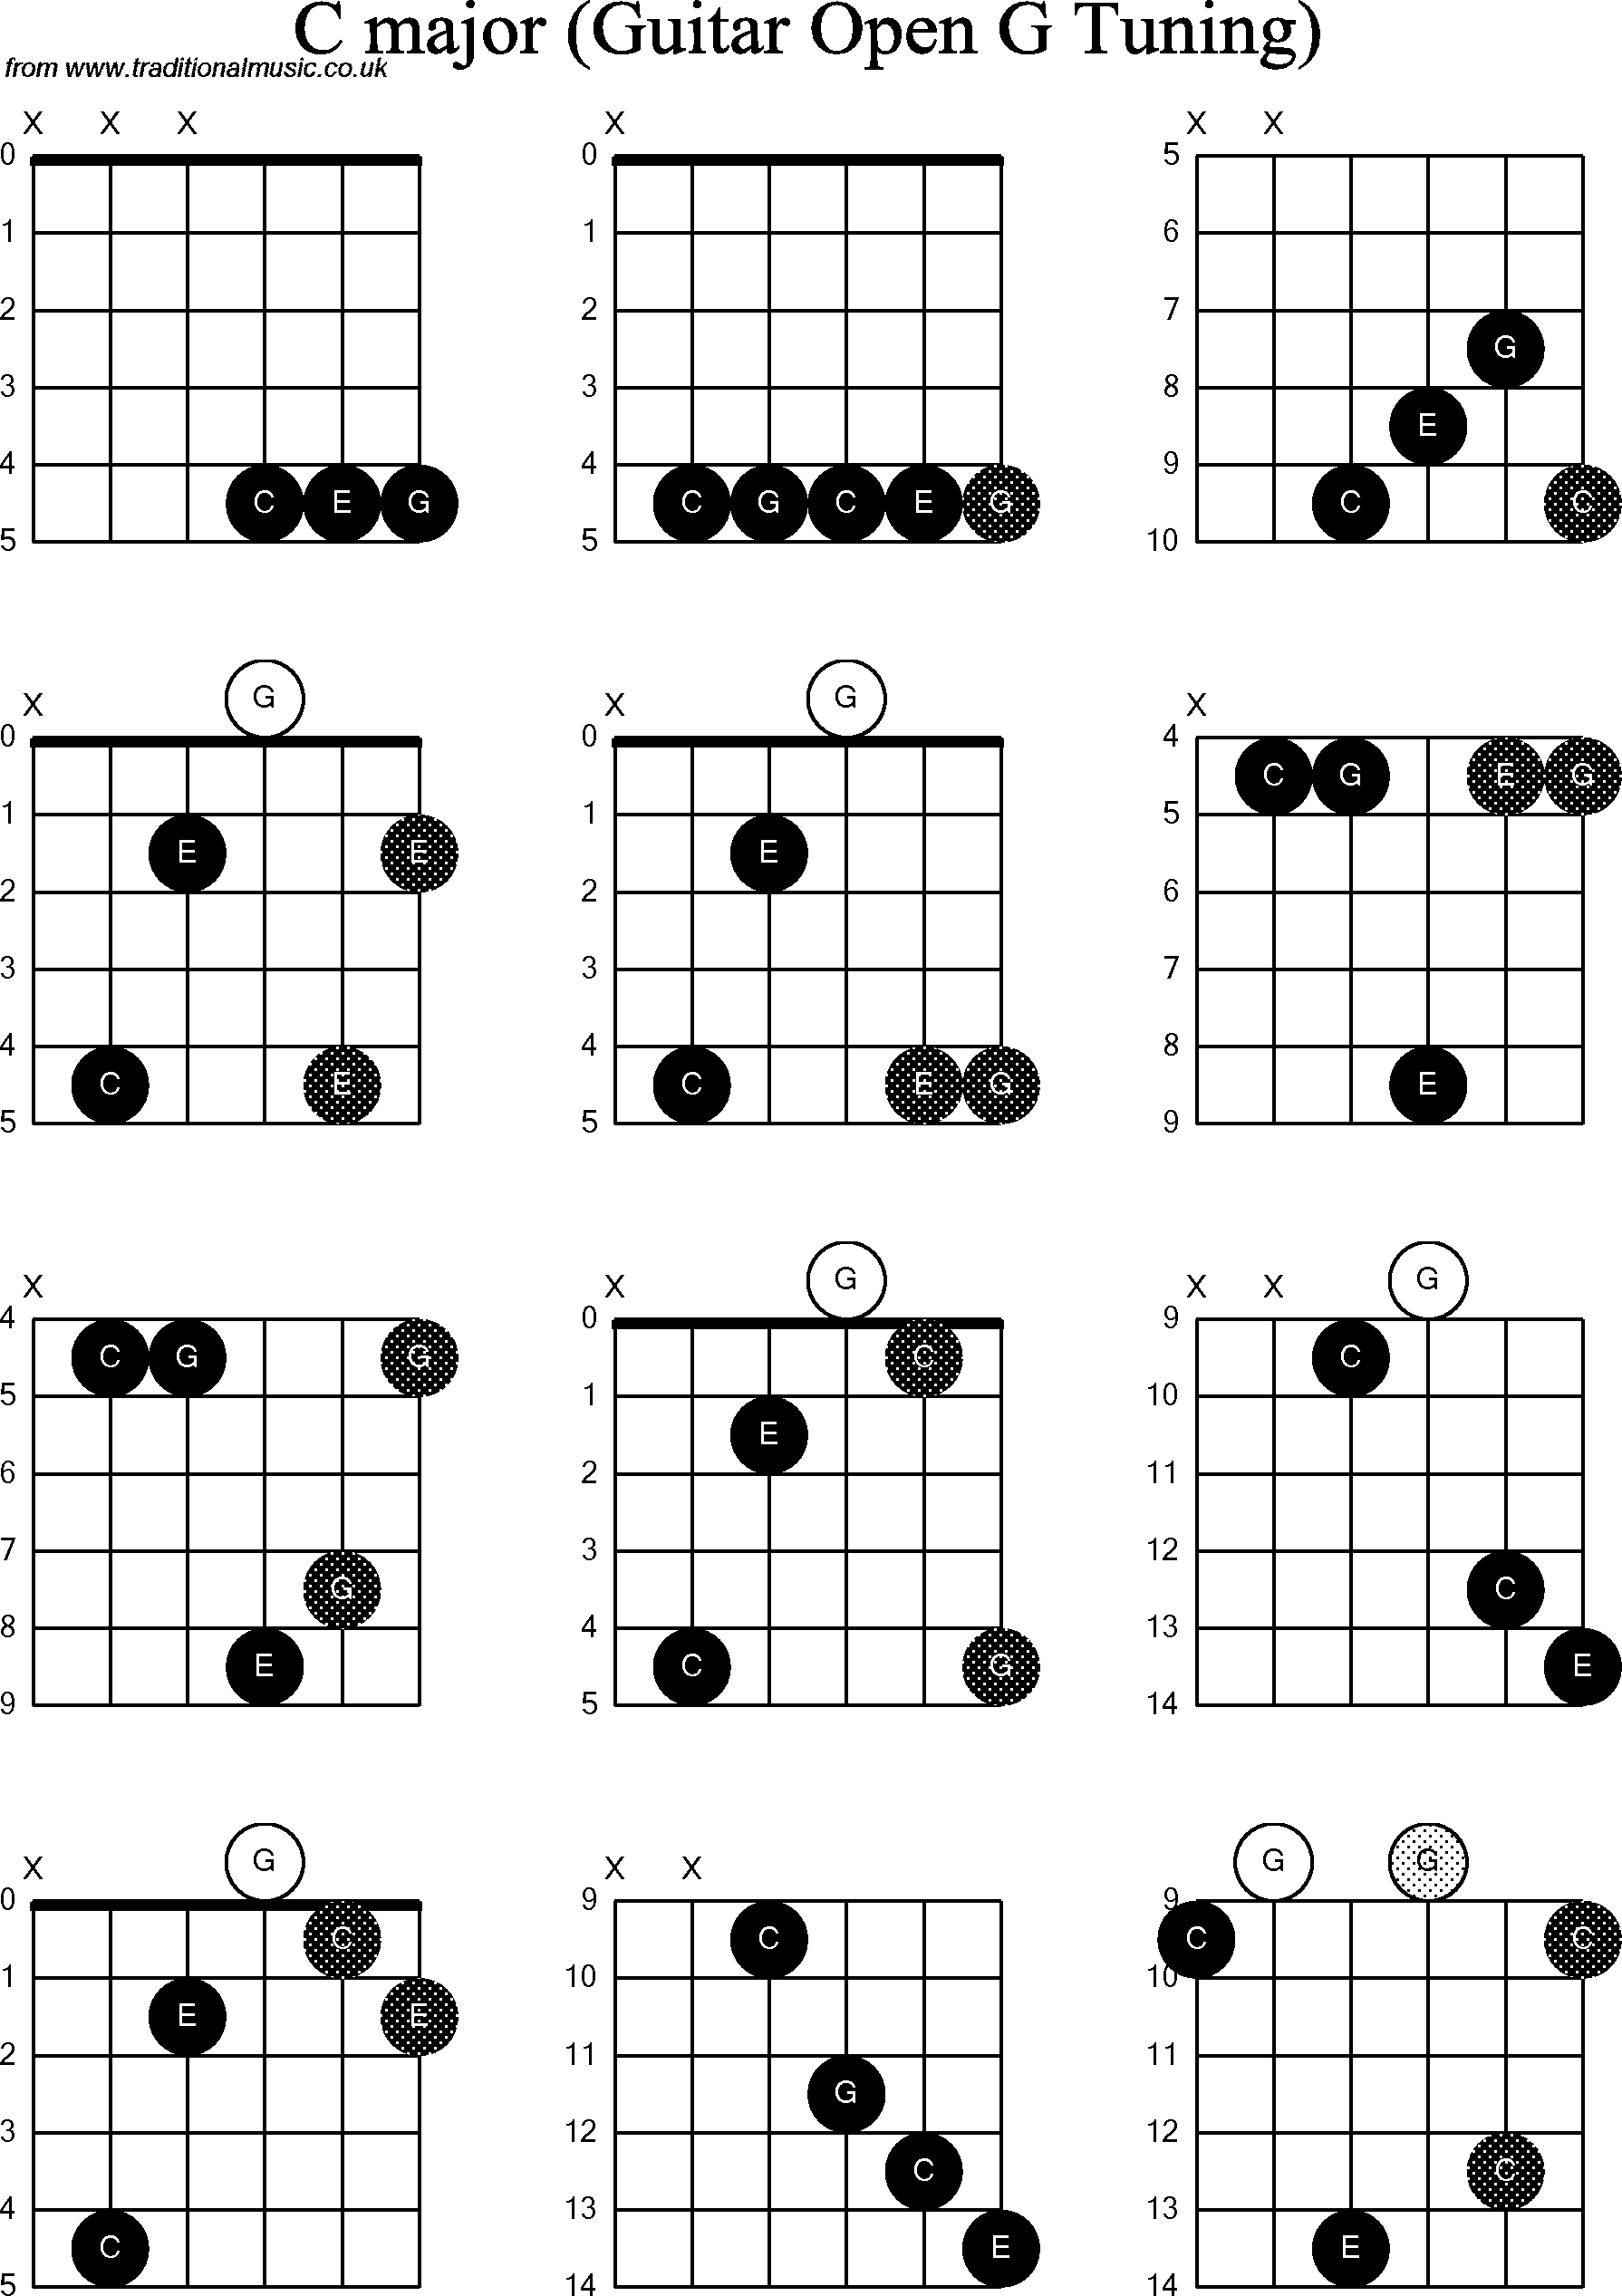 Chord diagrams for dobro c chord diagrams for dobro c hexwebz Choice Image